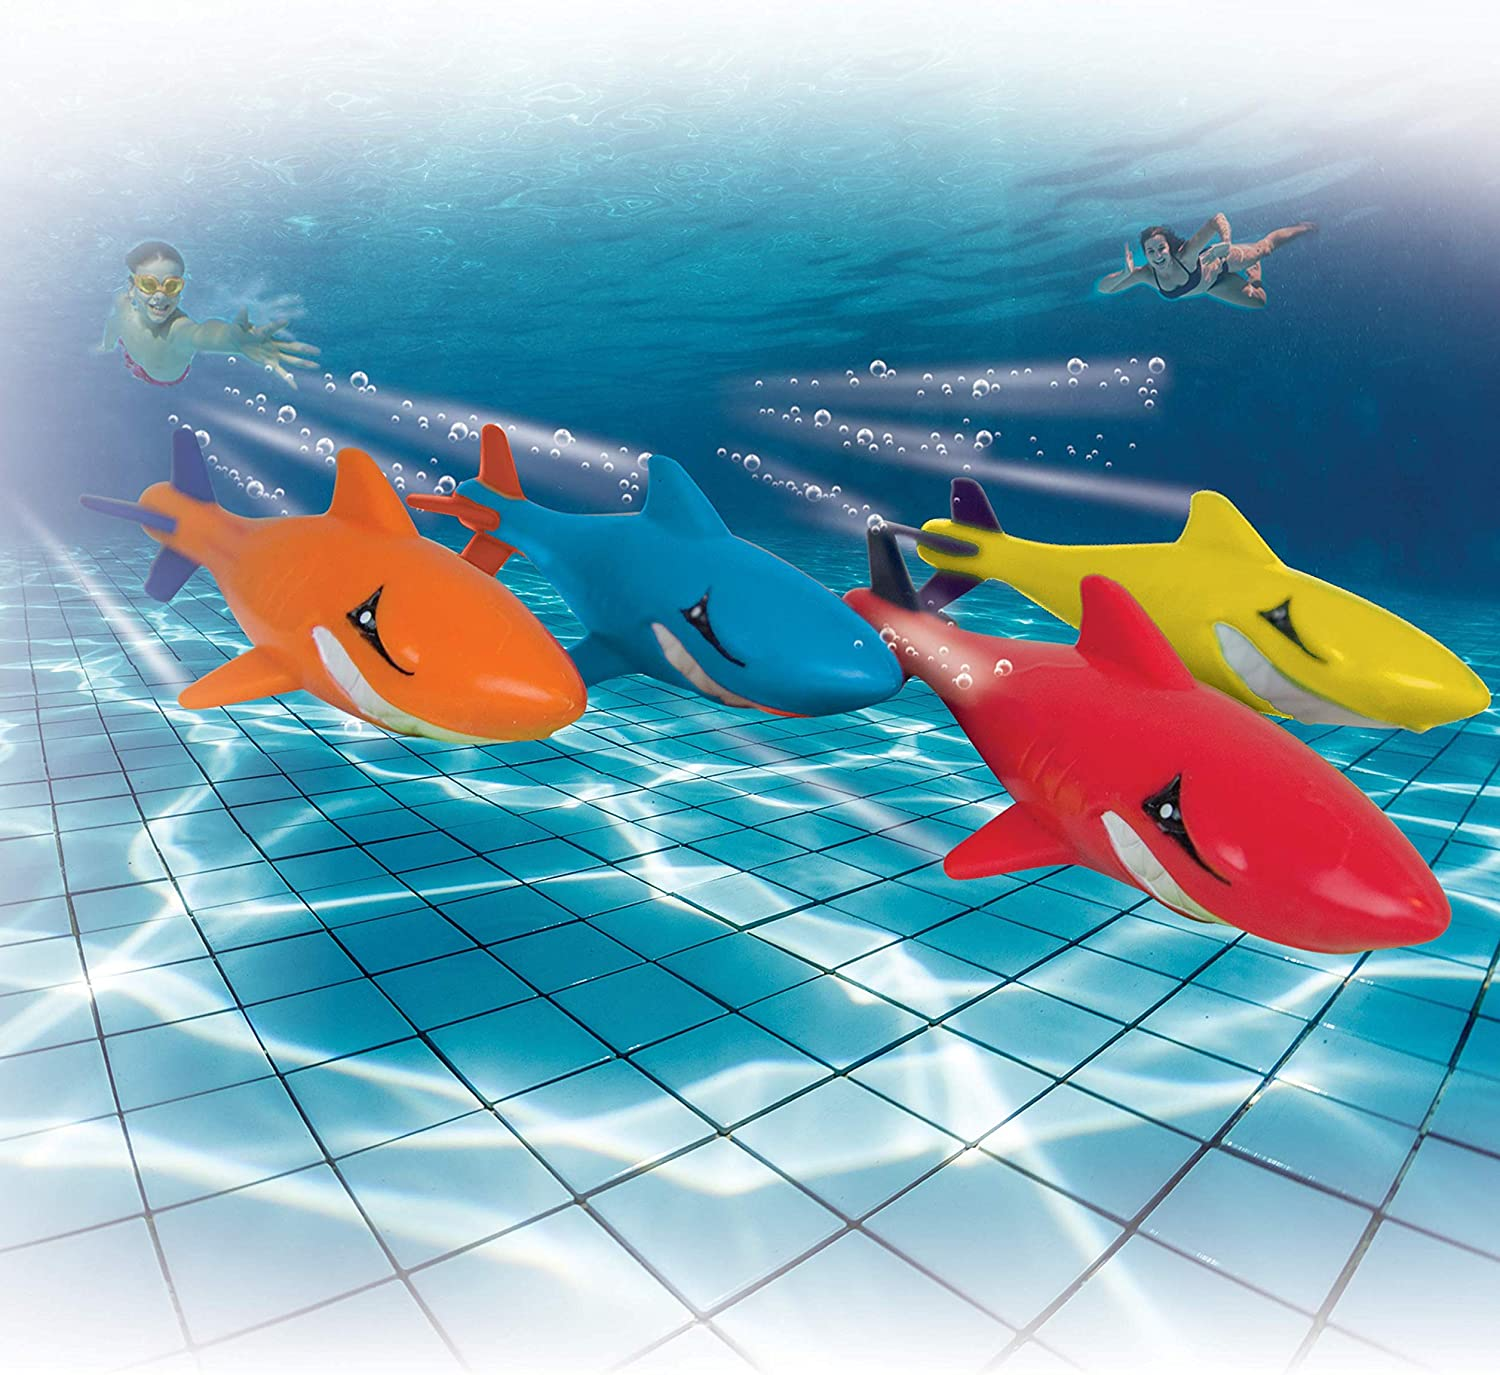 Prime Time Toys 7-Pack Sharkpedo Diving Masters Underwater Gliders - Pool Diving Toy - Assorted Colors (8413-7)